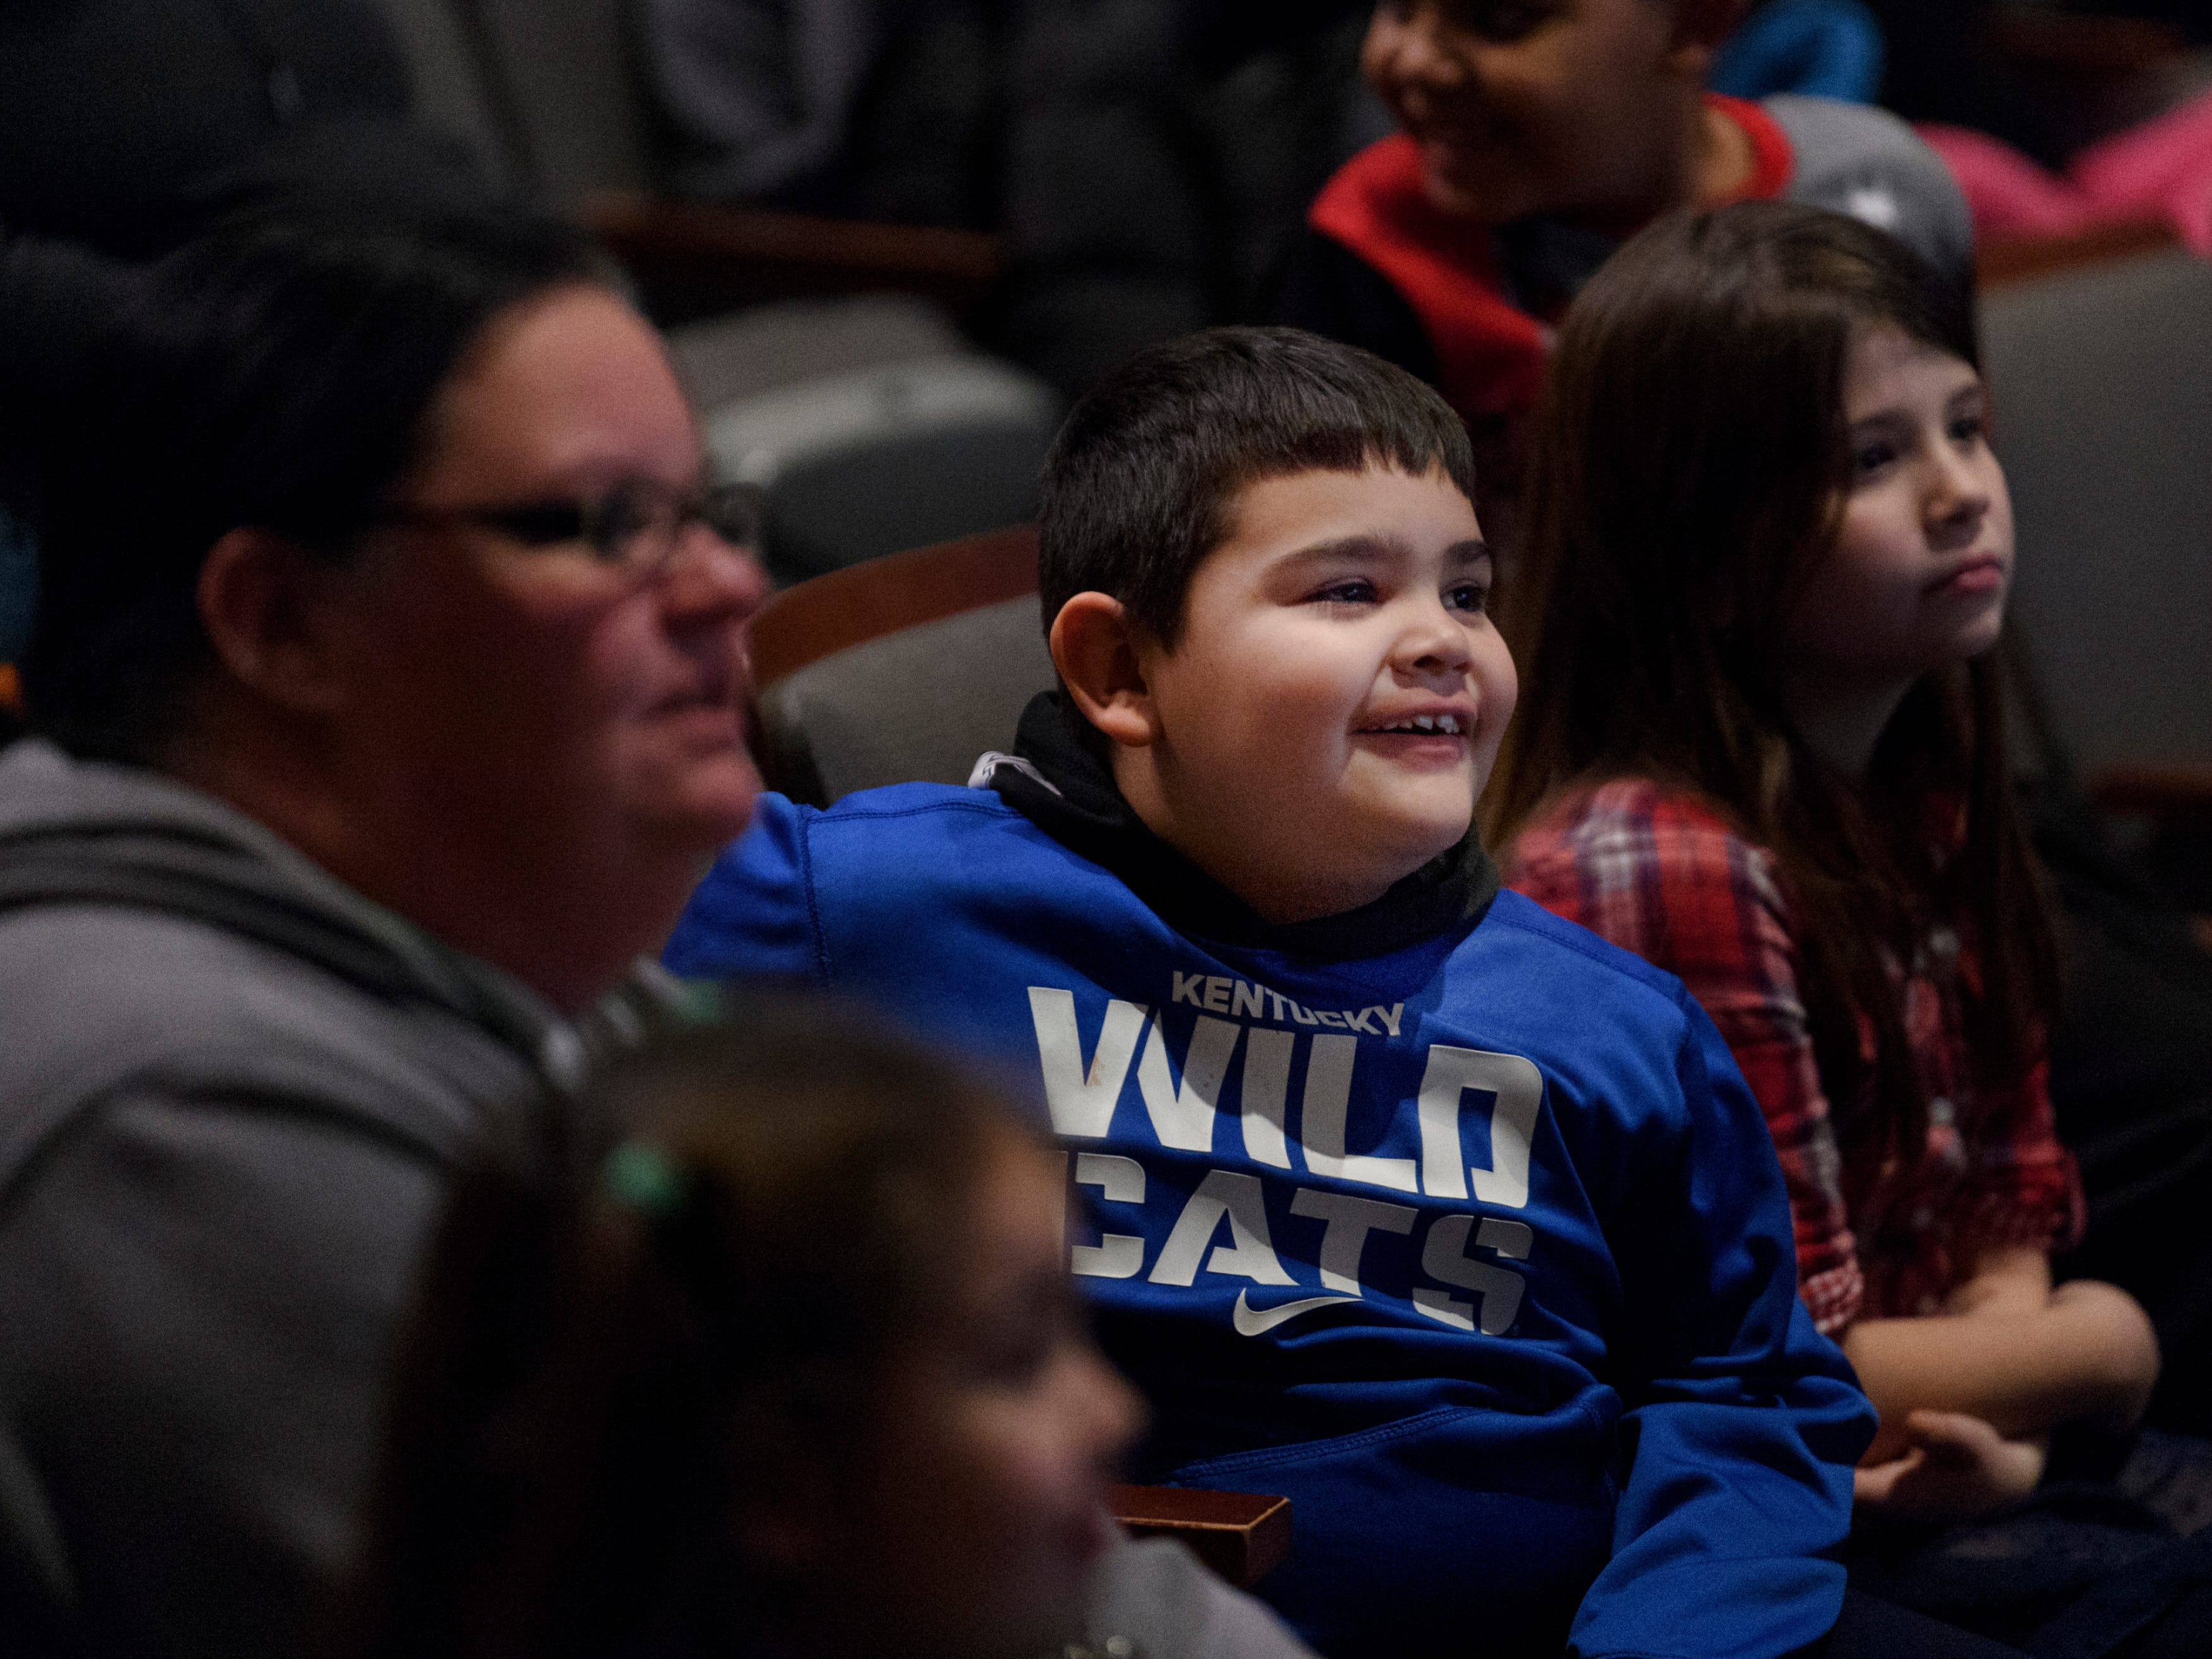 Marcos Gish, 7, watches a presentation about owls during a Family Night for Cairo and Jefferson elementary school students and their families at Henderson Community College's Preston Arts Center in Henderson, Ky., Thursday, Jan. 24, 2019. The event centered around a new National Geographic Photo Ark exhibit by photographer Joel Sartore, which will be on display for the public until March 15.